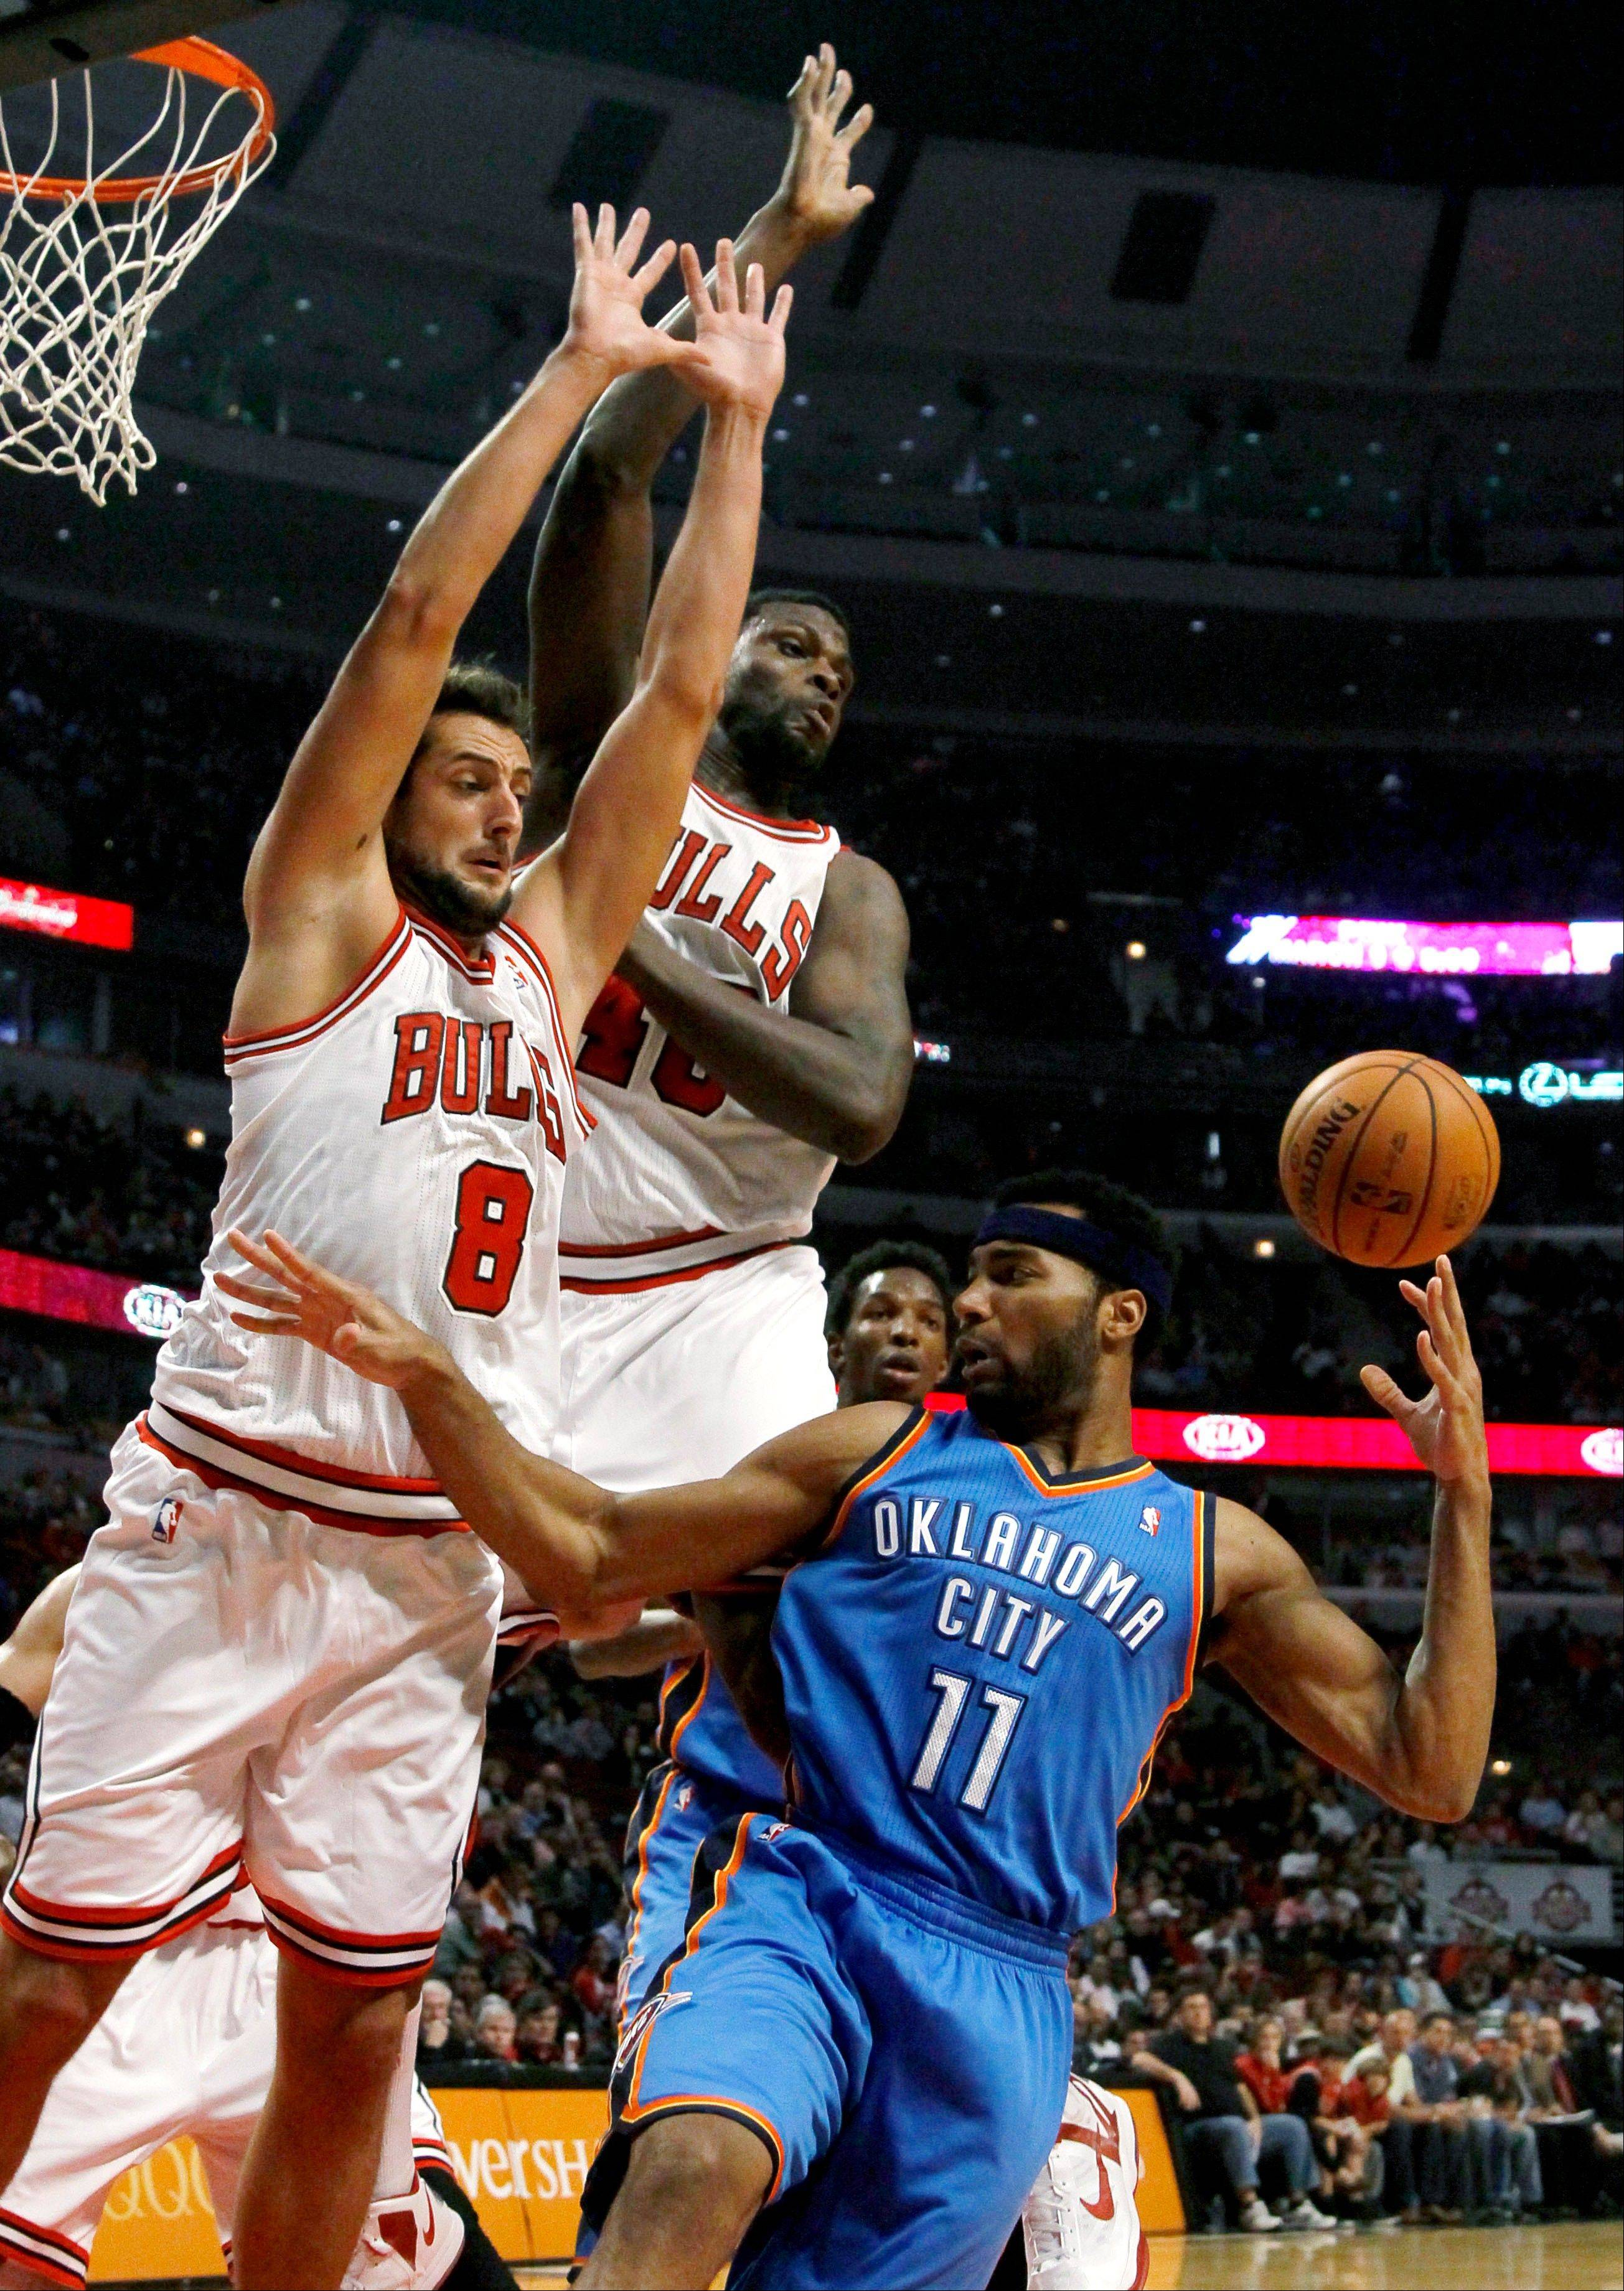 Oklahoma City Thunder small forward Lazar Hayward (11) passes behind his head as Chicago Bulls shooting guard Marco Belinelli (8) and center Nazr Mohammed defend during the first half of an NBA preseason basketball game, Tuesday, Oct. 23, 2012, in Chicago. (AP Photo/Charlie Arbogast)